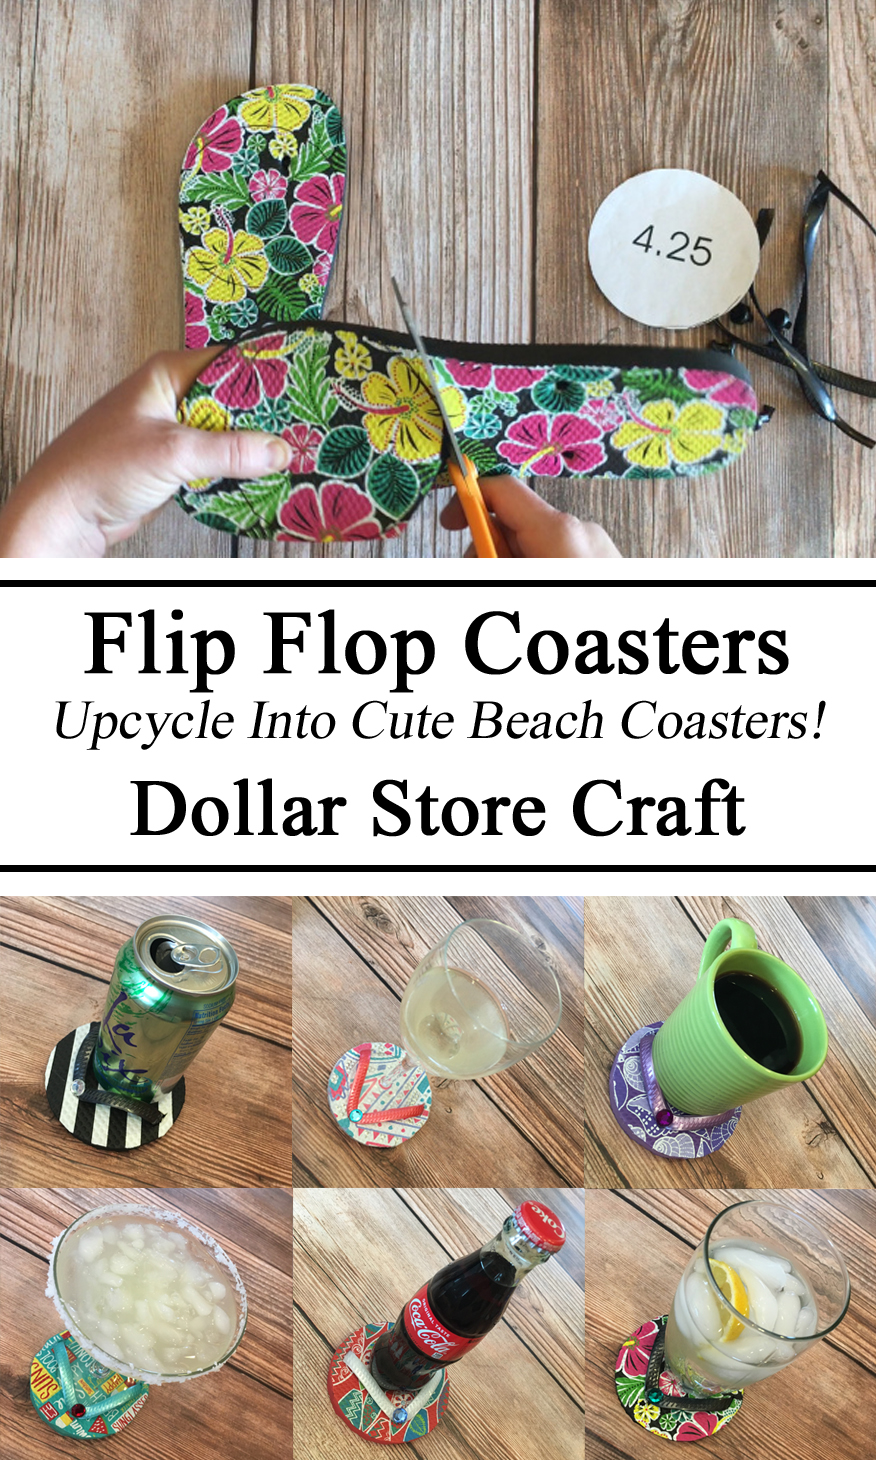 Dollar Store Hacks Finds Beach Themed Coasters, Crafts, Upcycle, Gifts, DIY, Summer Activity